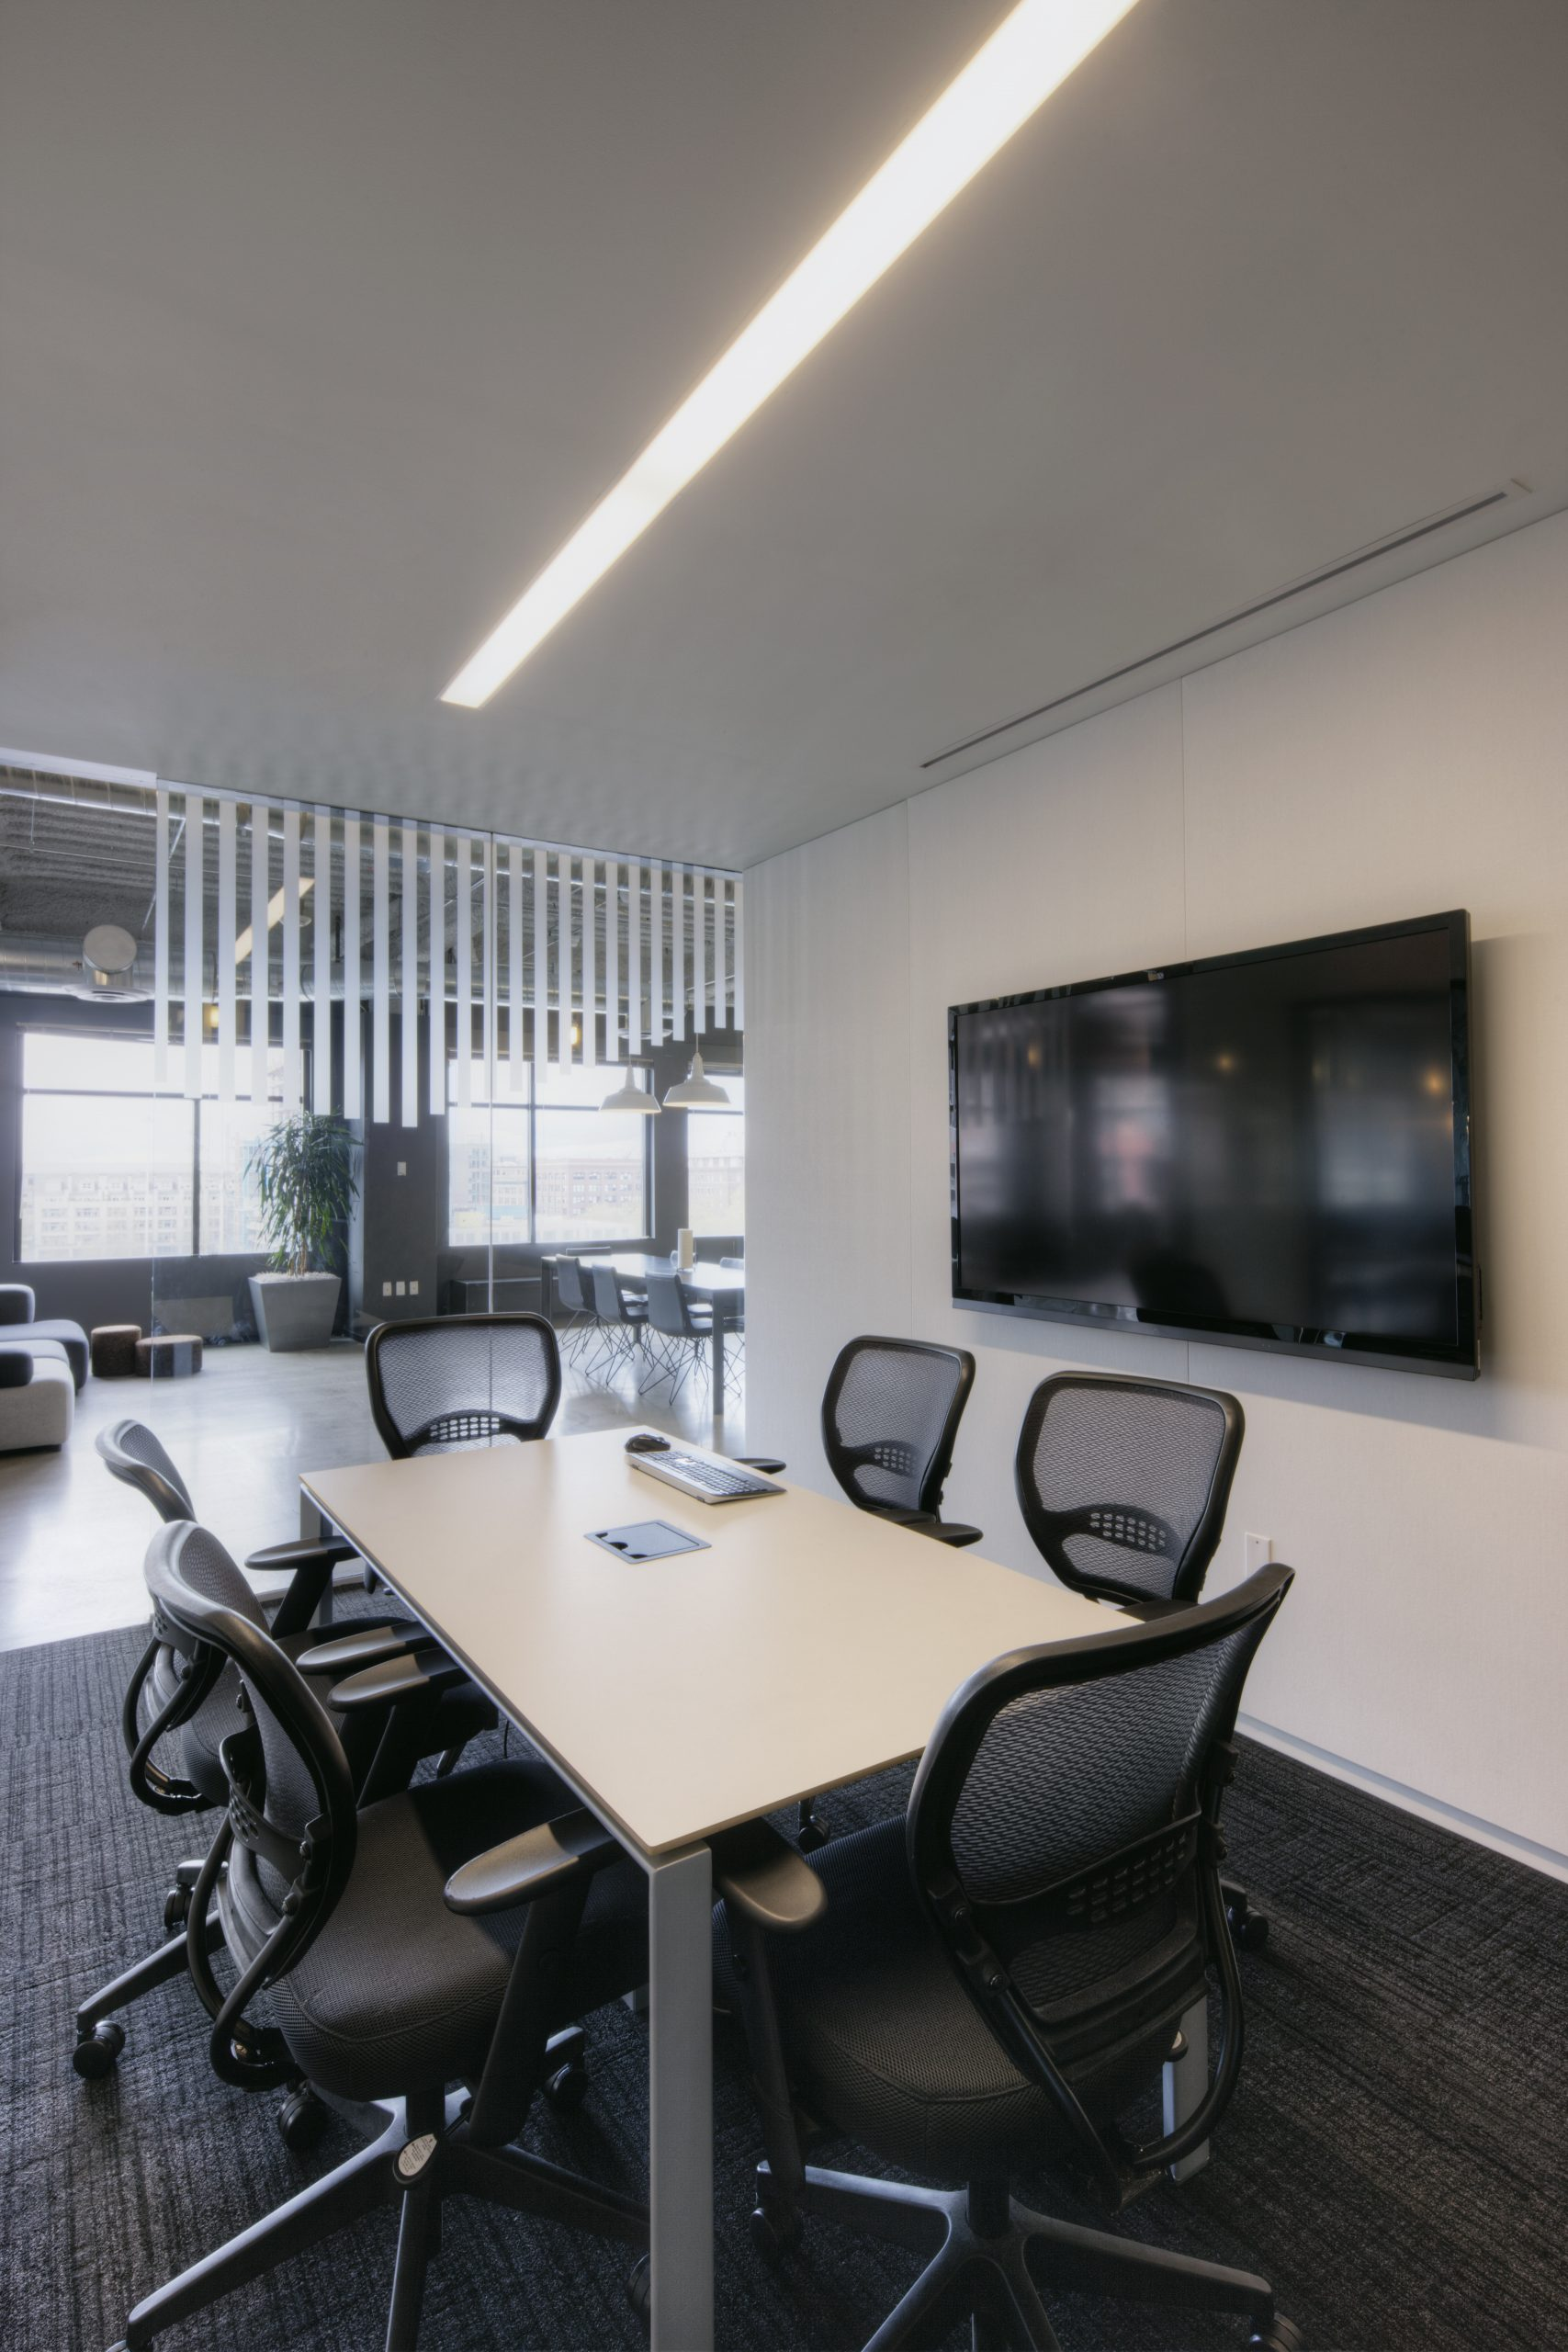 Having flexible AV technology in your meeting rooms is important for productive meetings.